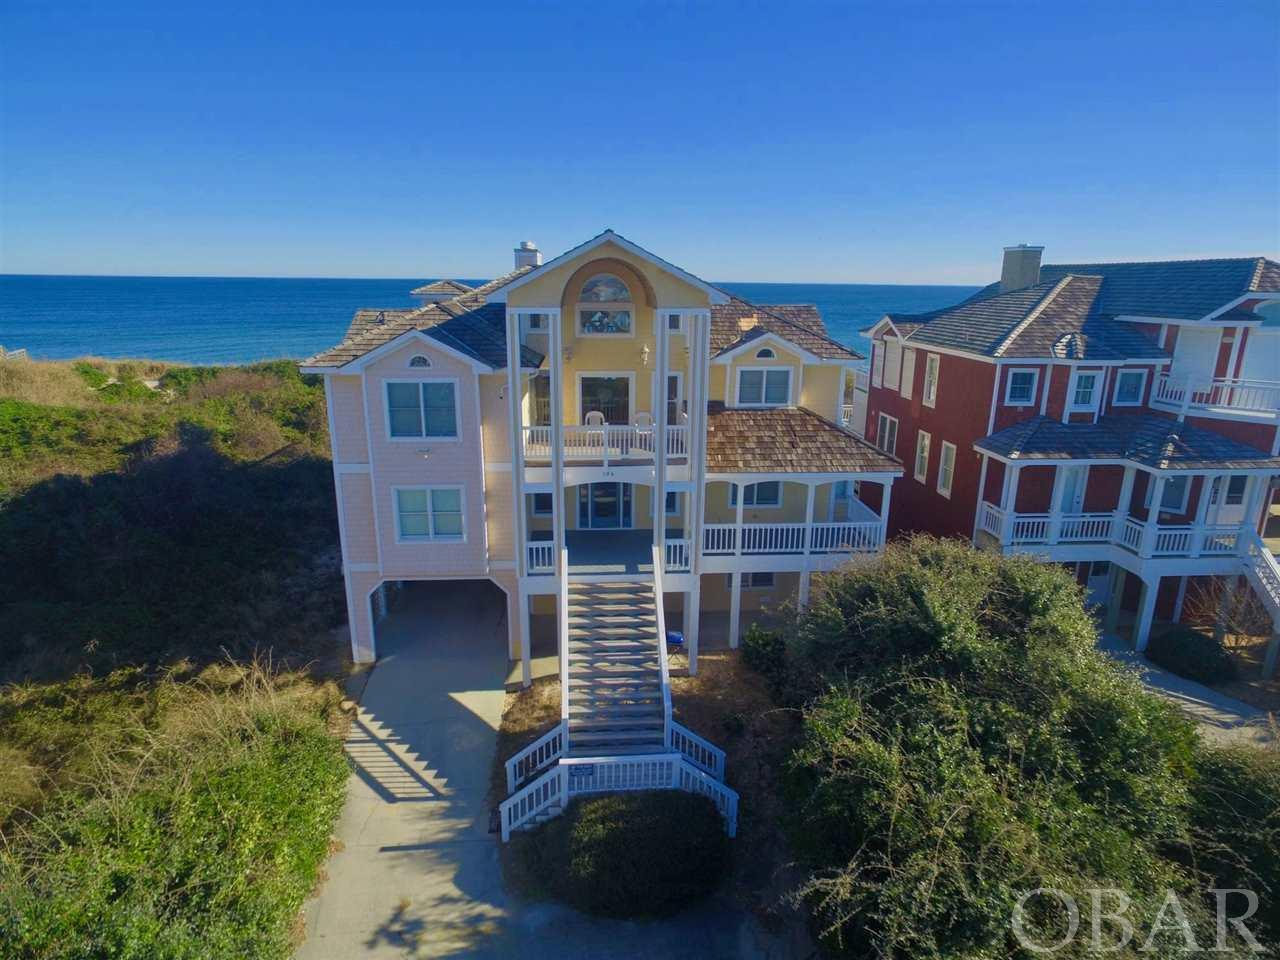 106 Sand Castle Court, Nags Head, NC 27959, 7 Bedrooms Bedrooms, ,4 BathroomsBathrooms,Residential,For sale,Sand Castle Court,103213